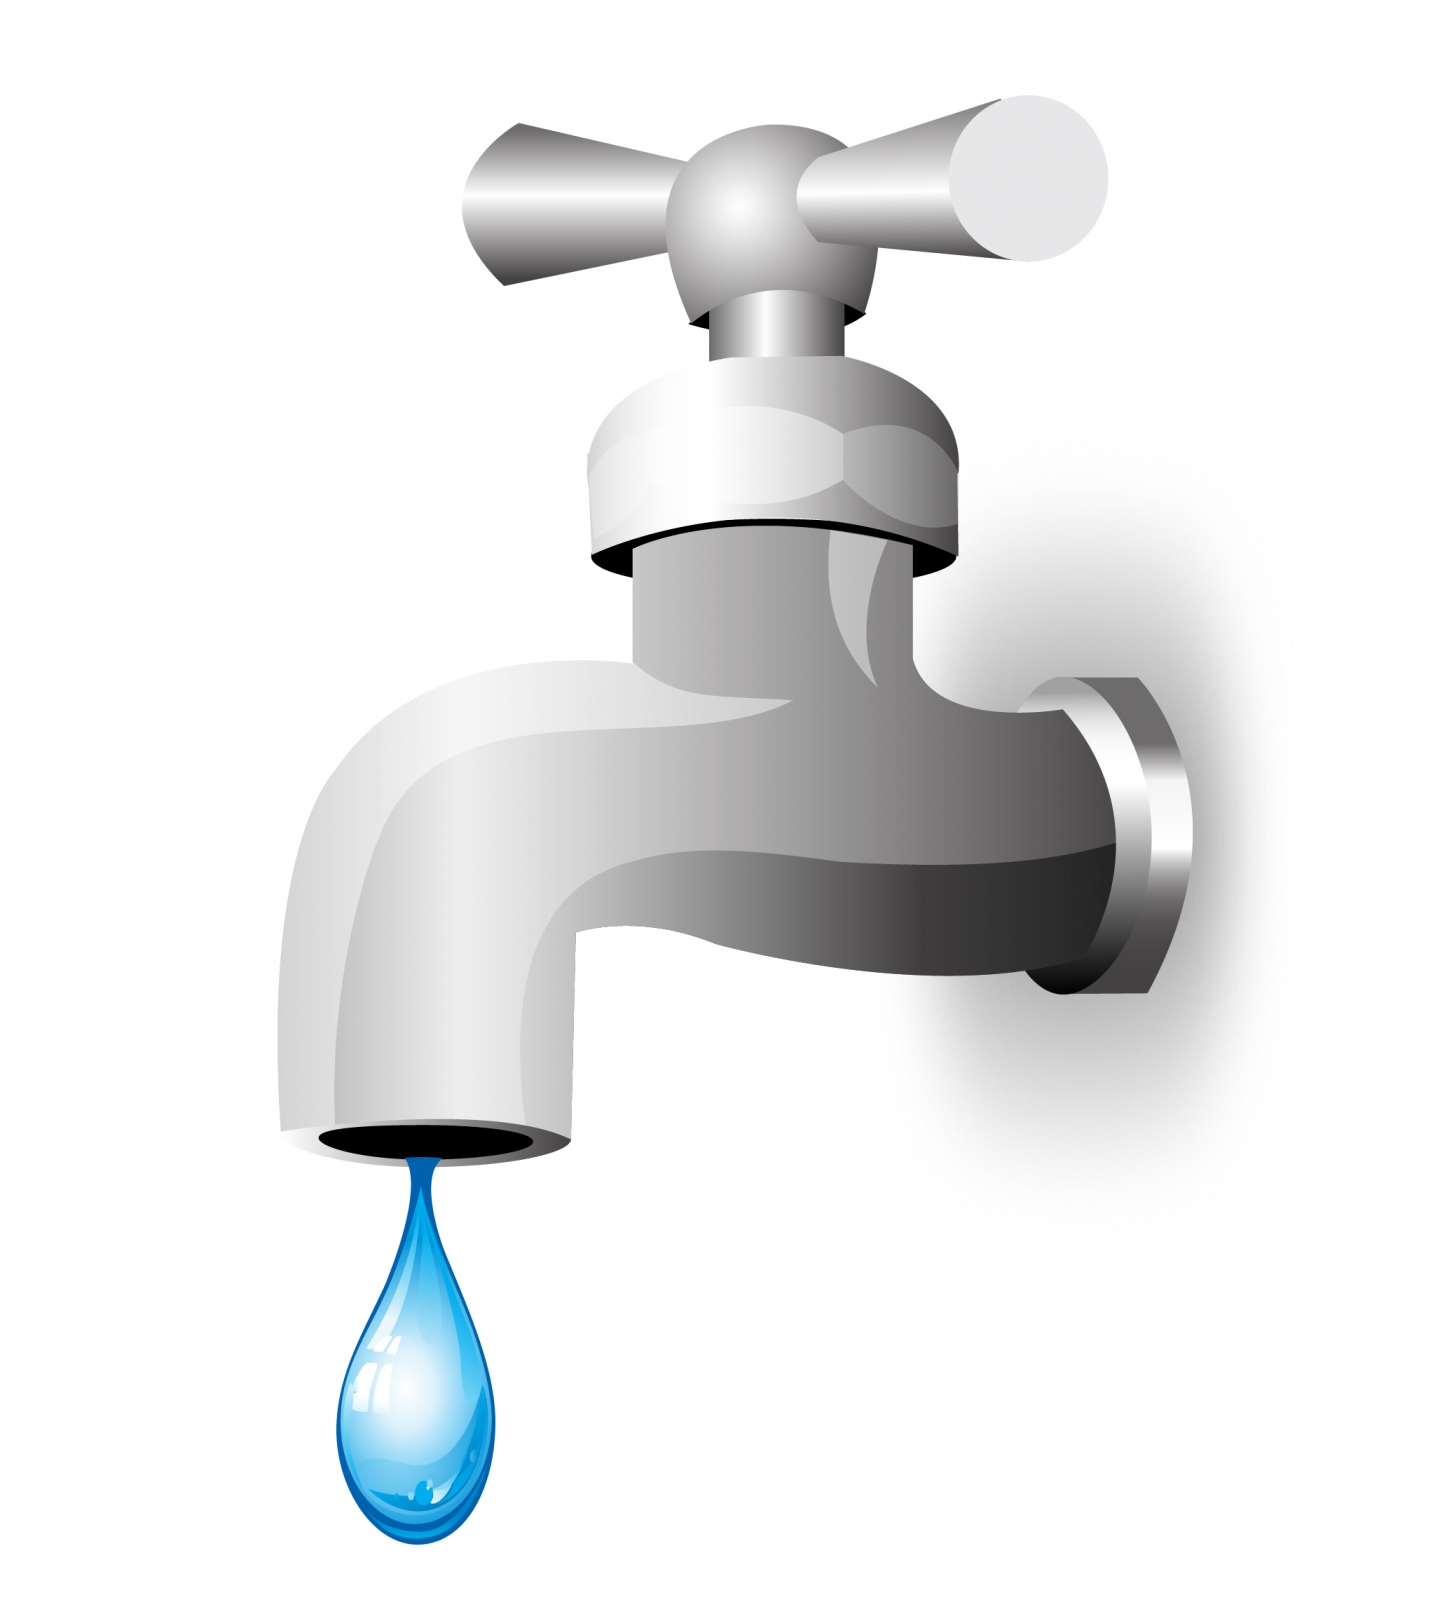 Water tap free vector - Tap PNG